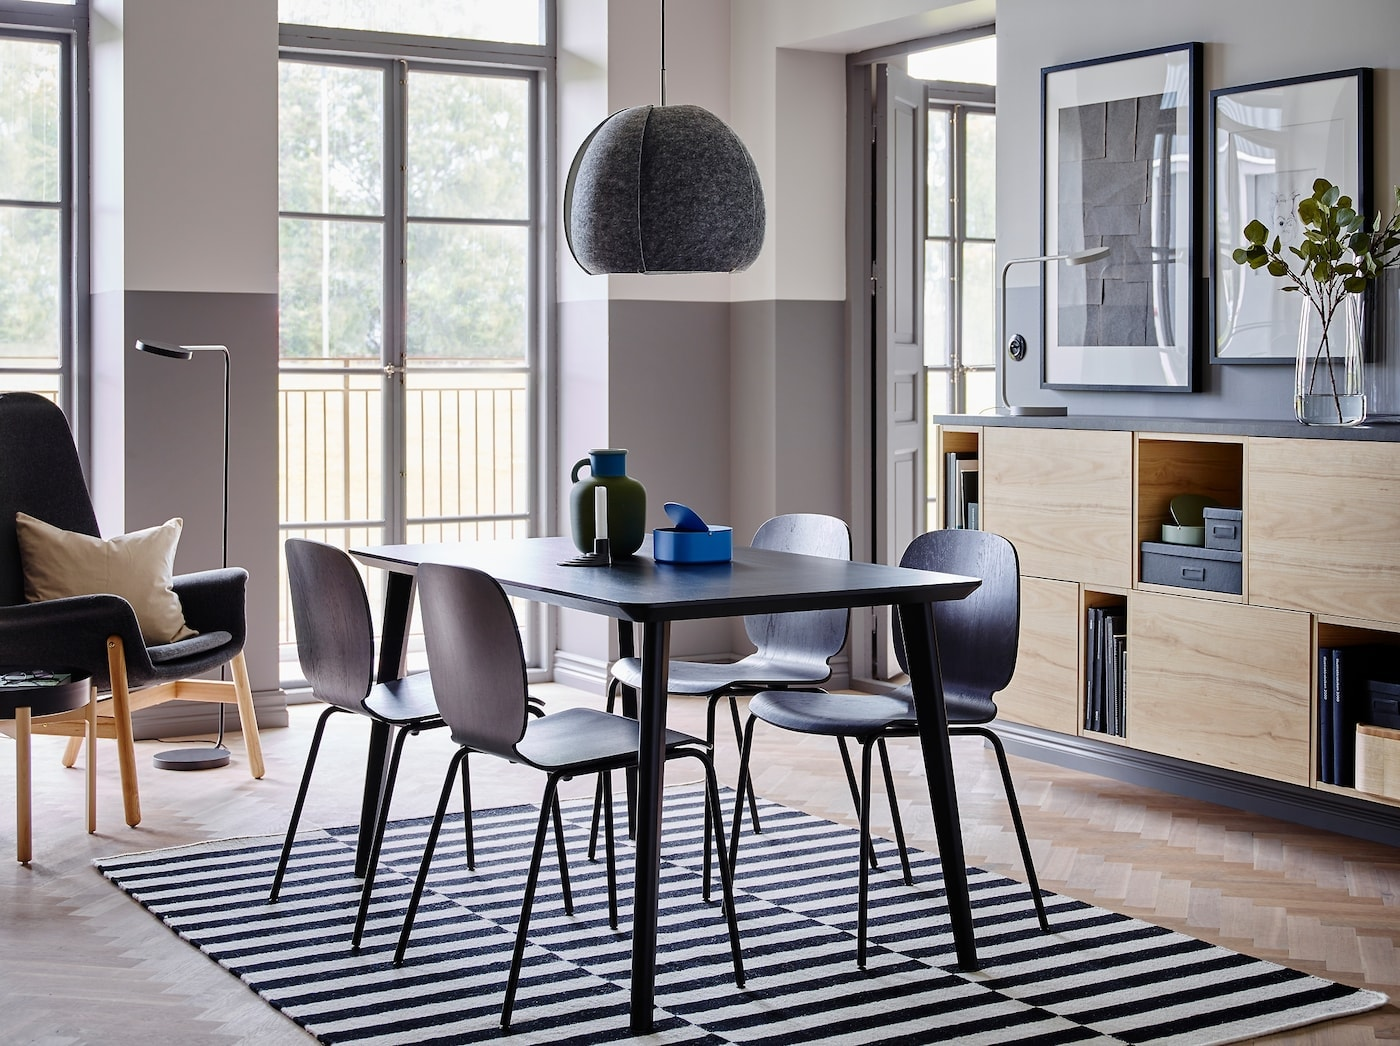 Genial Dining Room Design Ideas Gallery   IKEA